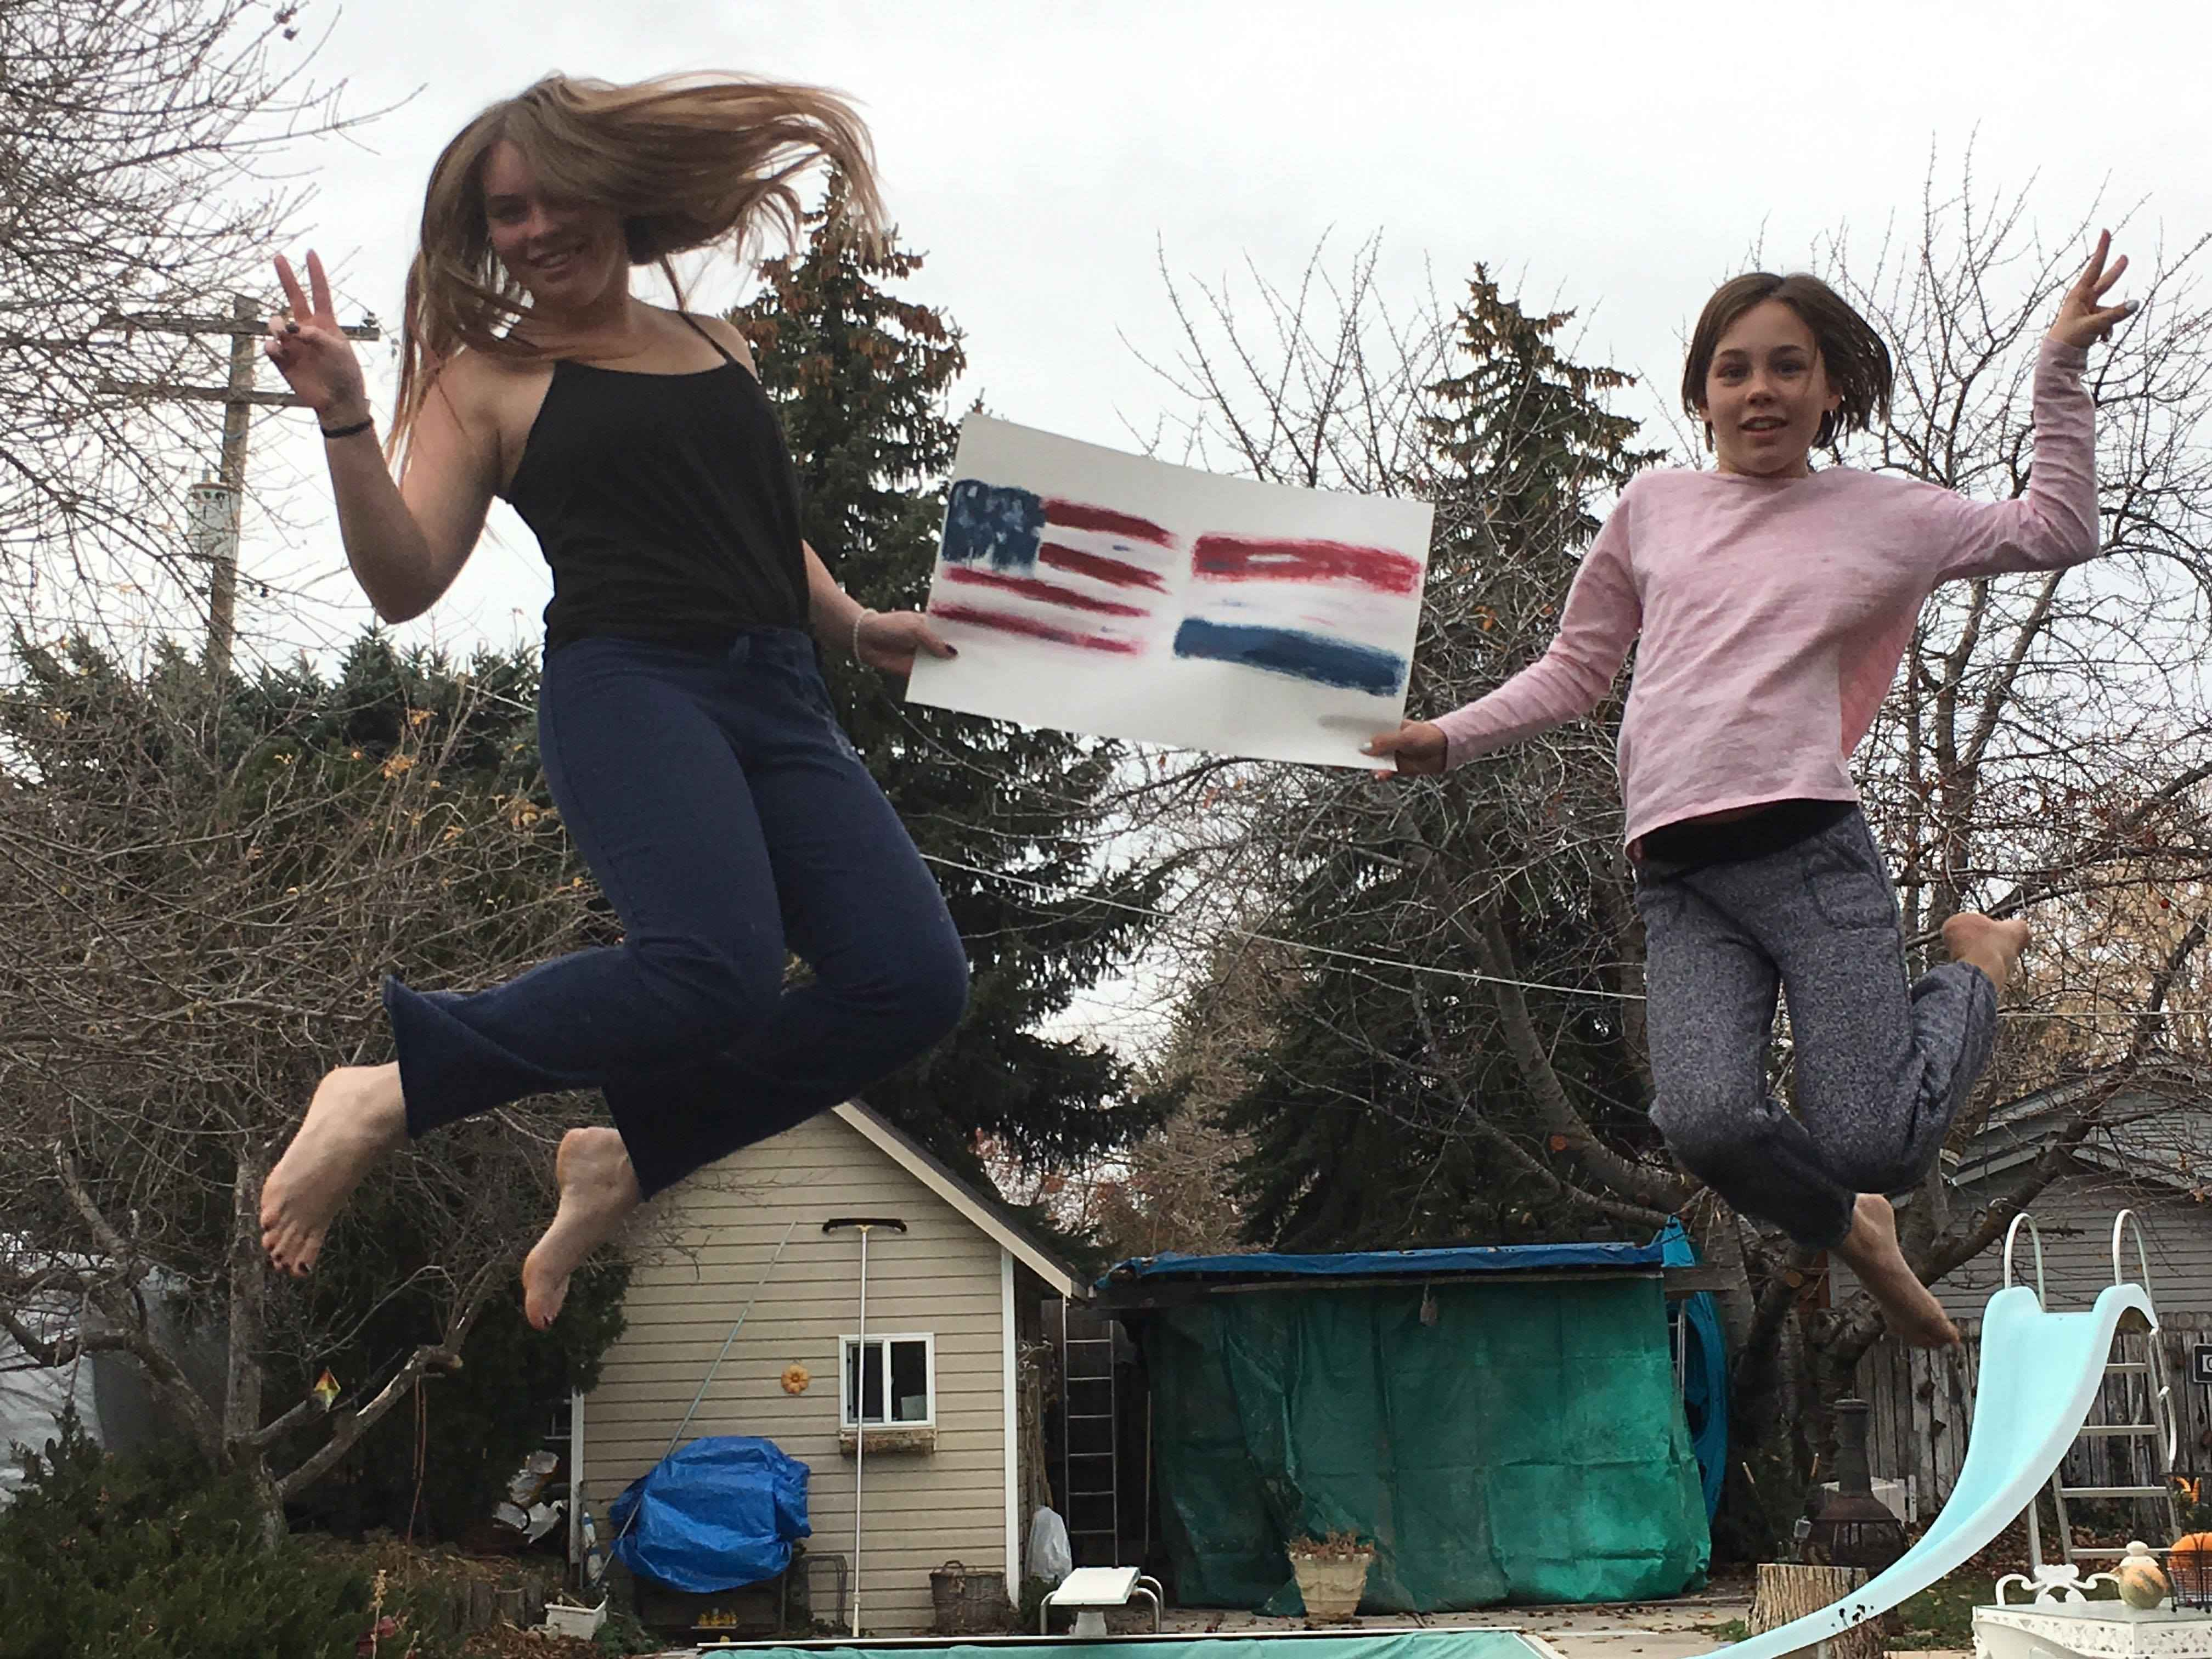 The Mannings – jumping for joy and for Axel's World Peace Movement